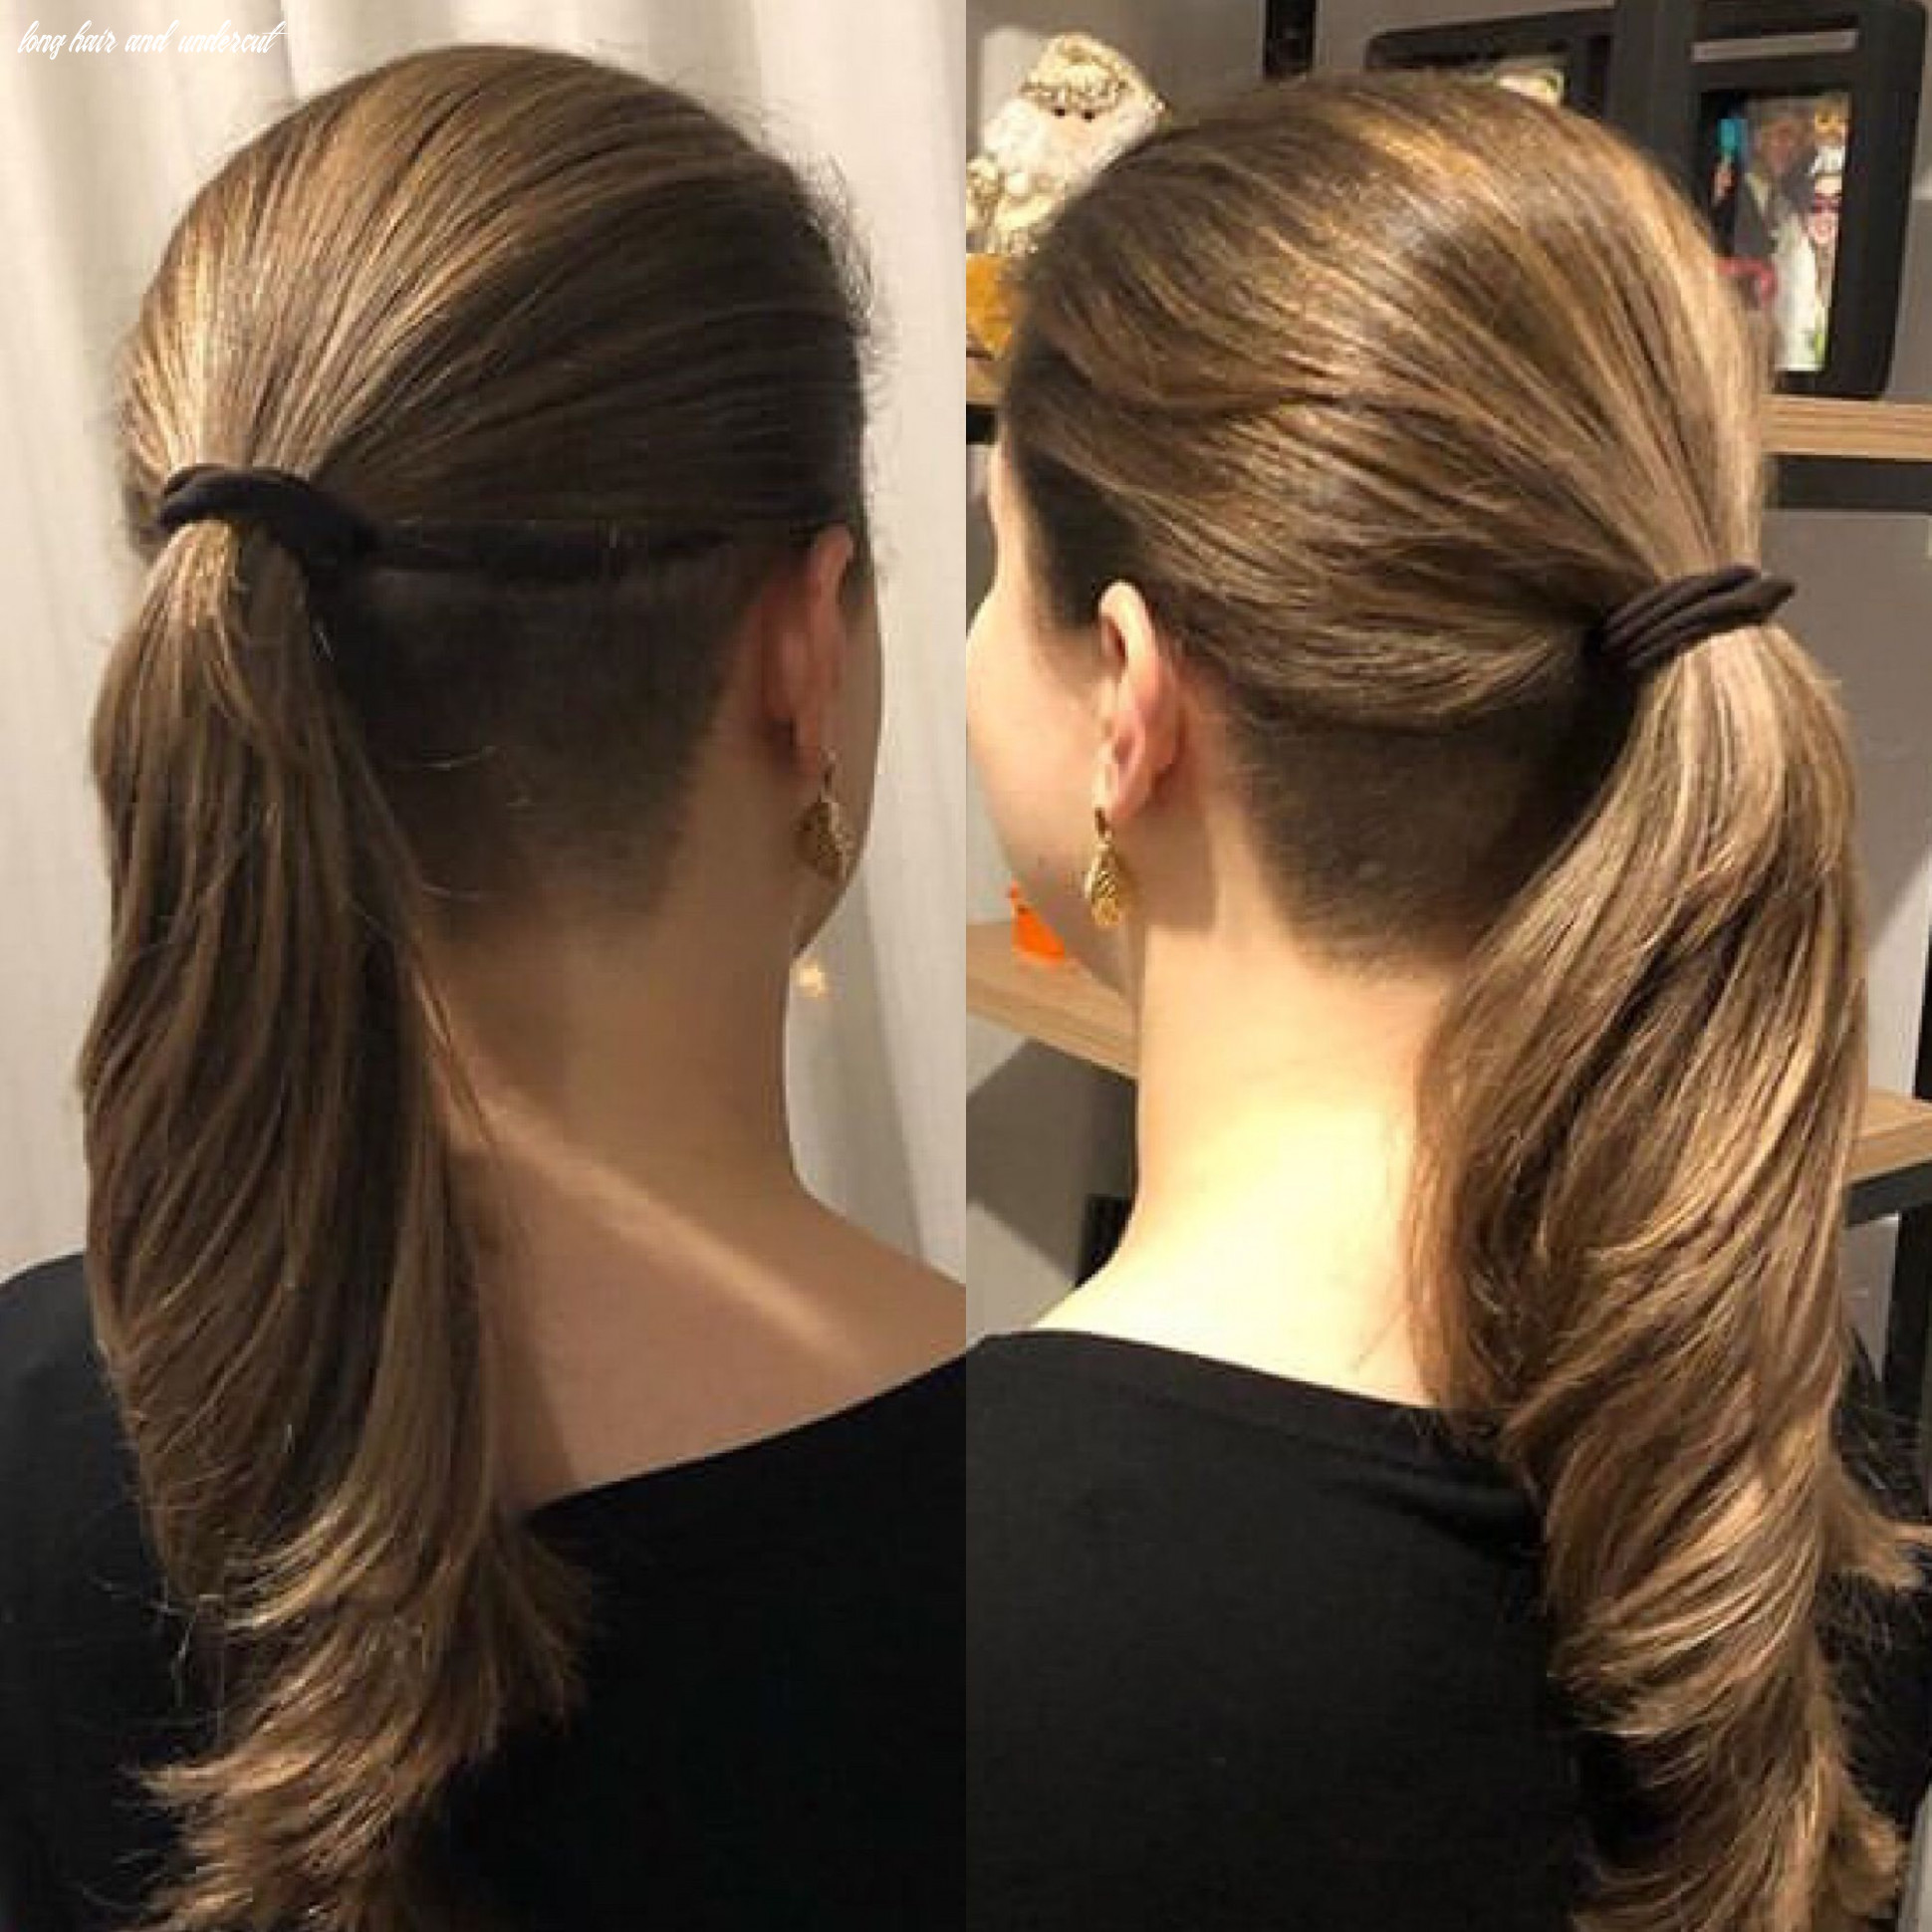 Pin by Closet Hair on HC | Undercut hairstyles, Long hair styles ...